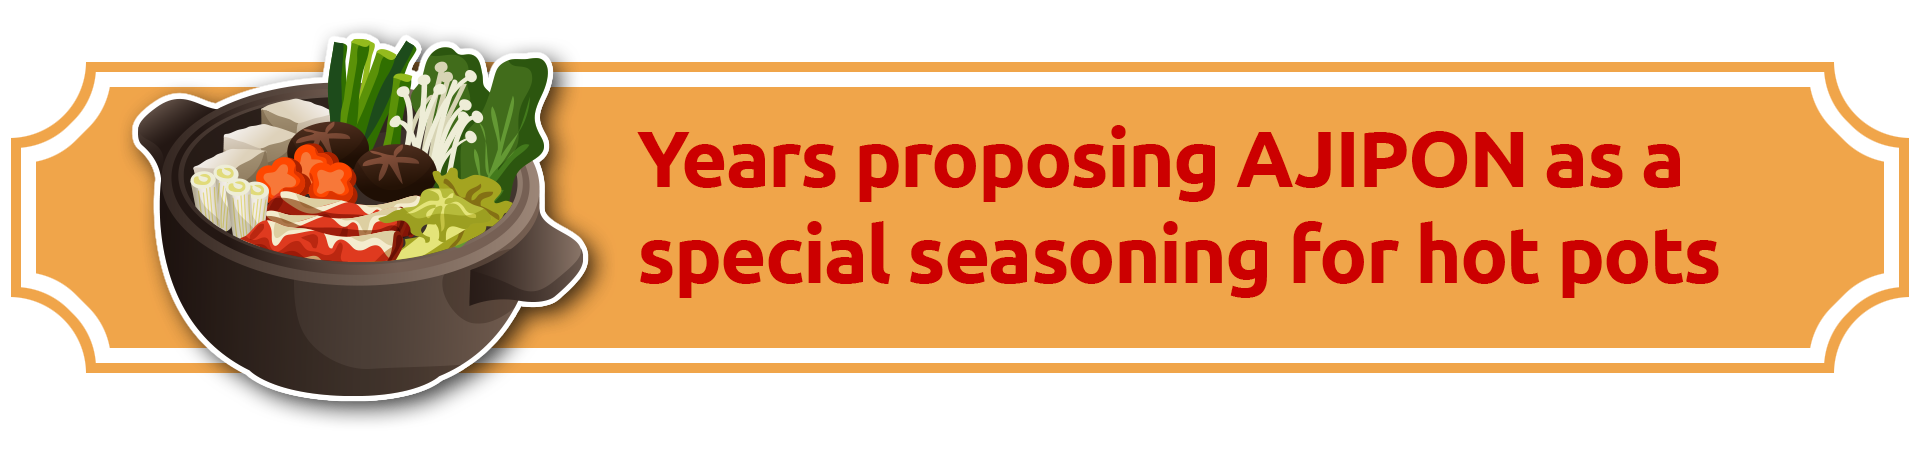 Years proposing AJIPON as a special seasoning for hot pots